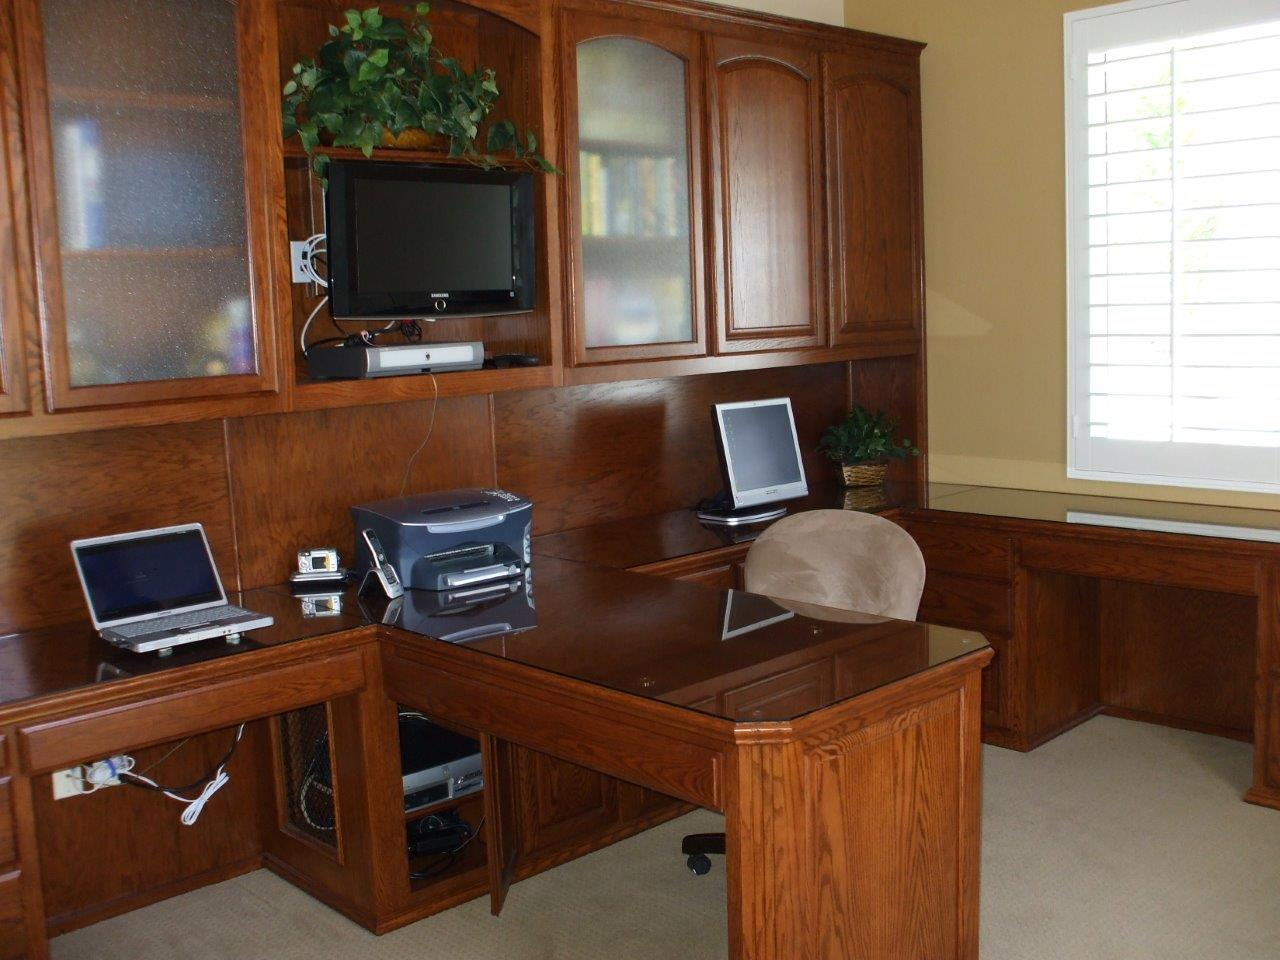 Custom home office furniture can provide maximum storage and organization Home Office Cabinets Built In Desks